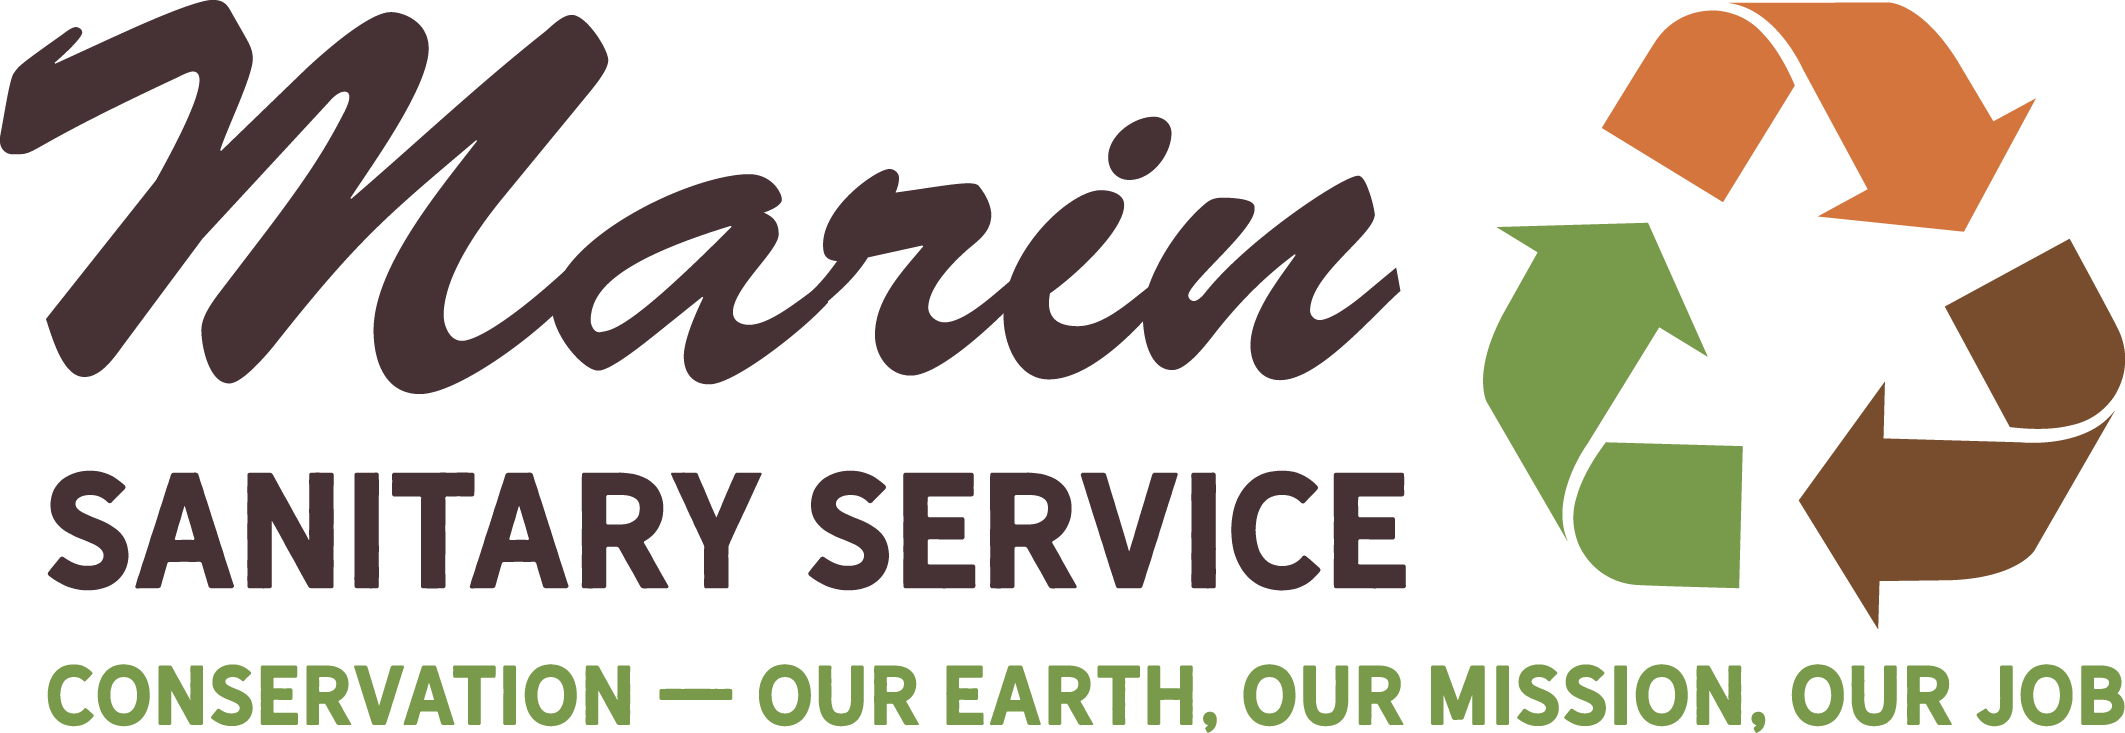 Tournament Sponsors - Marin Sanitary Service - Logo